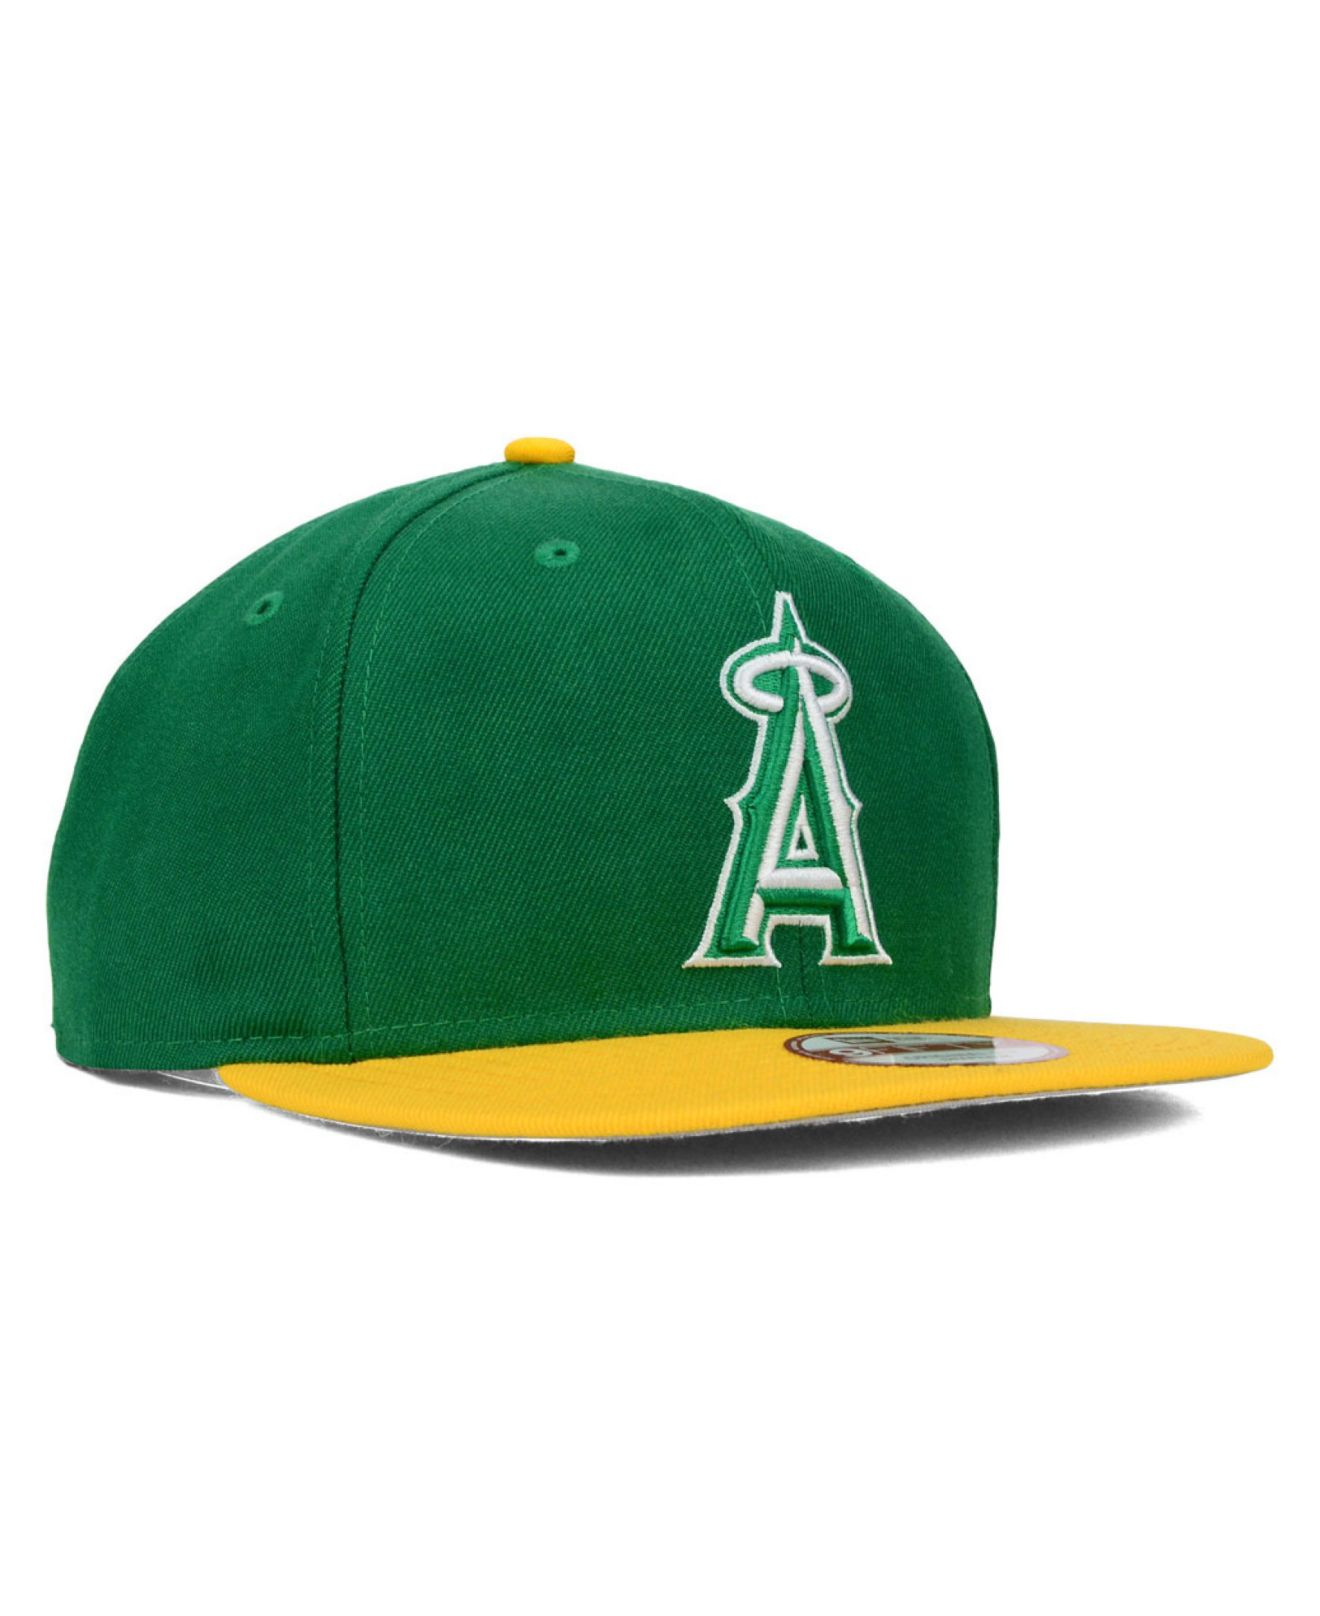 super popular 07060 66627 KTZ Los Angeles Angels Of Anaheim Twisted Original Fit 9fifty ...